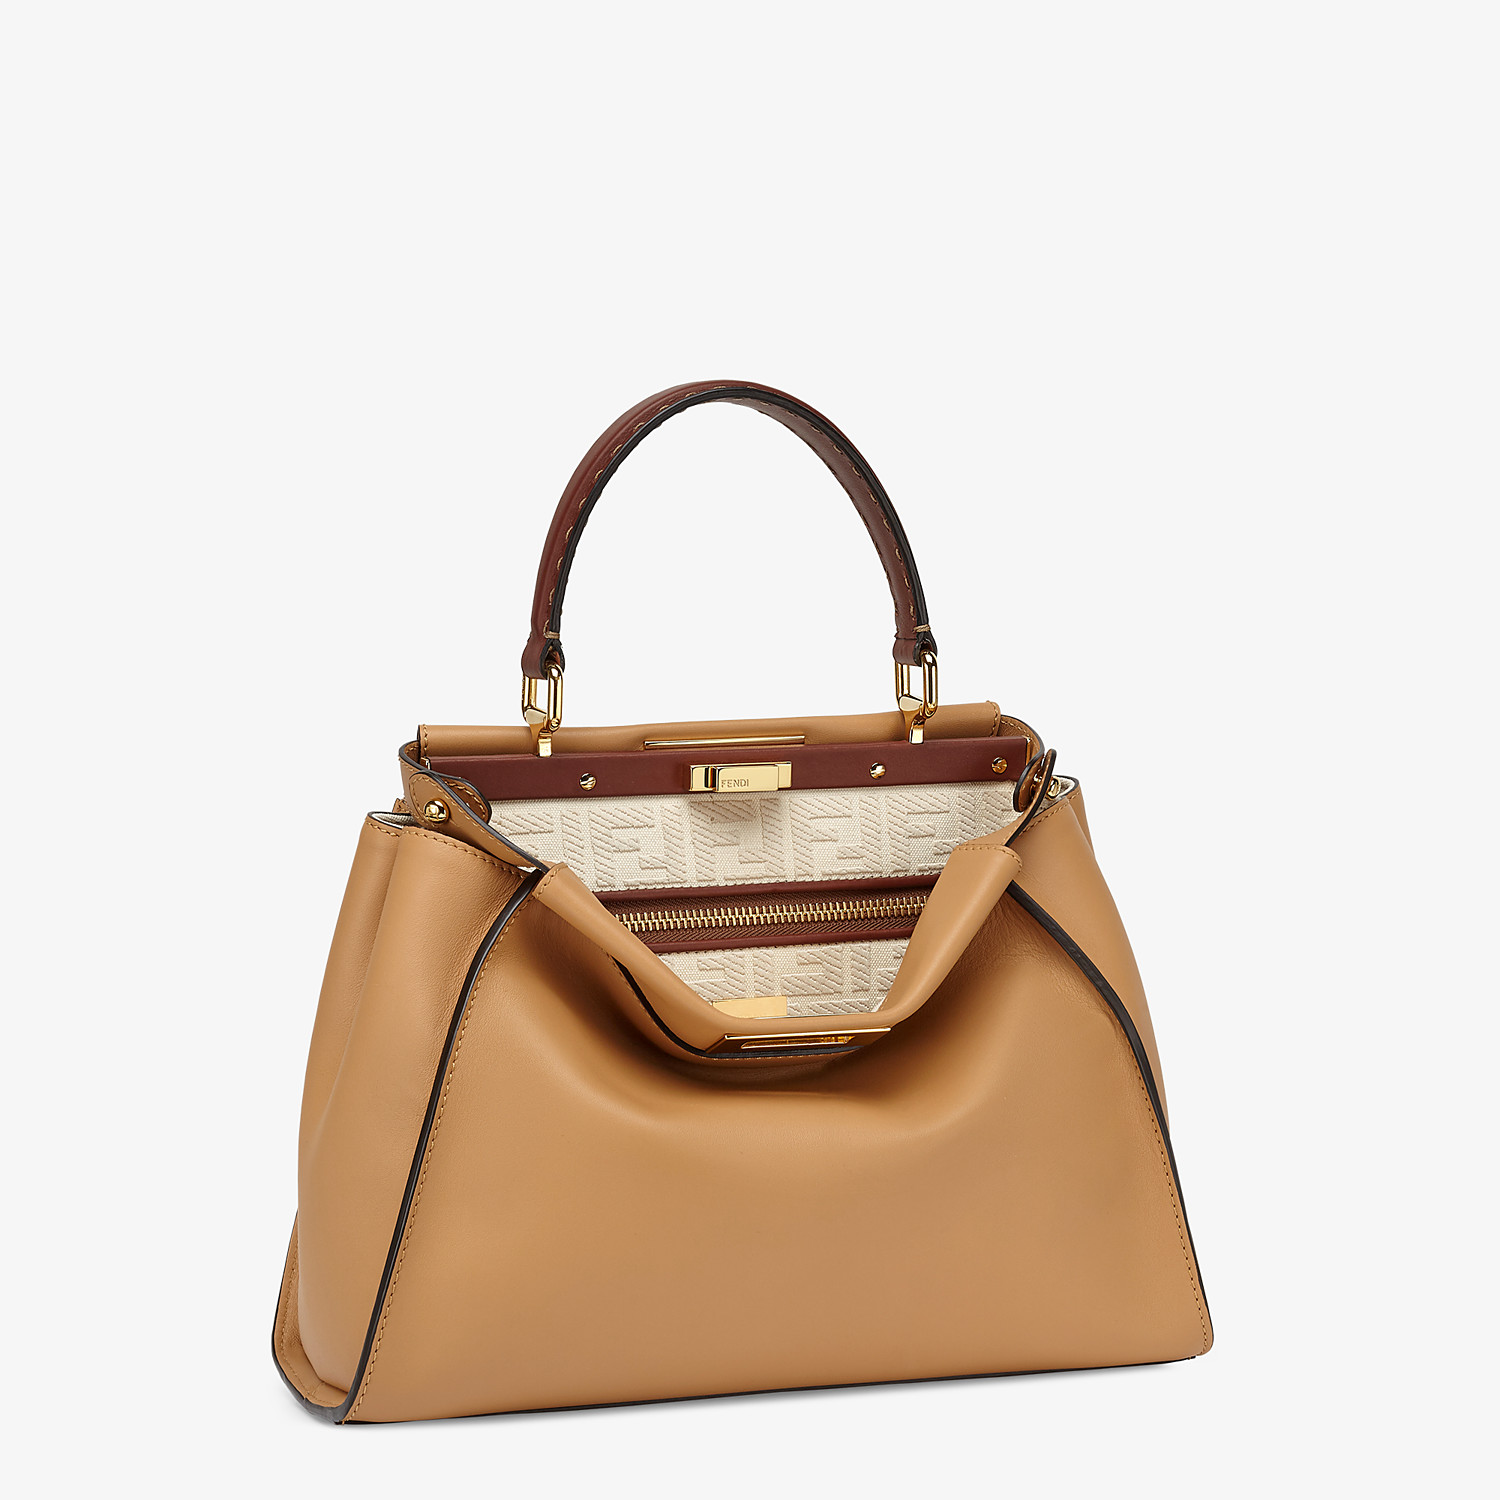 FENDI PEEKABOO ICONIC MEDIUM - Borsa in pelle beige e ricamo FF - vista 3 dettaglio